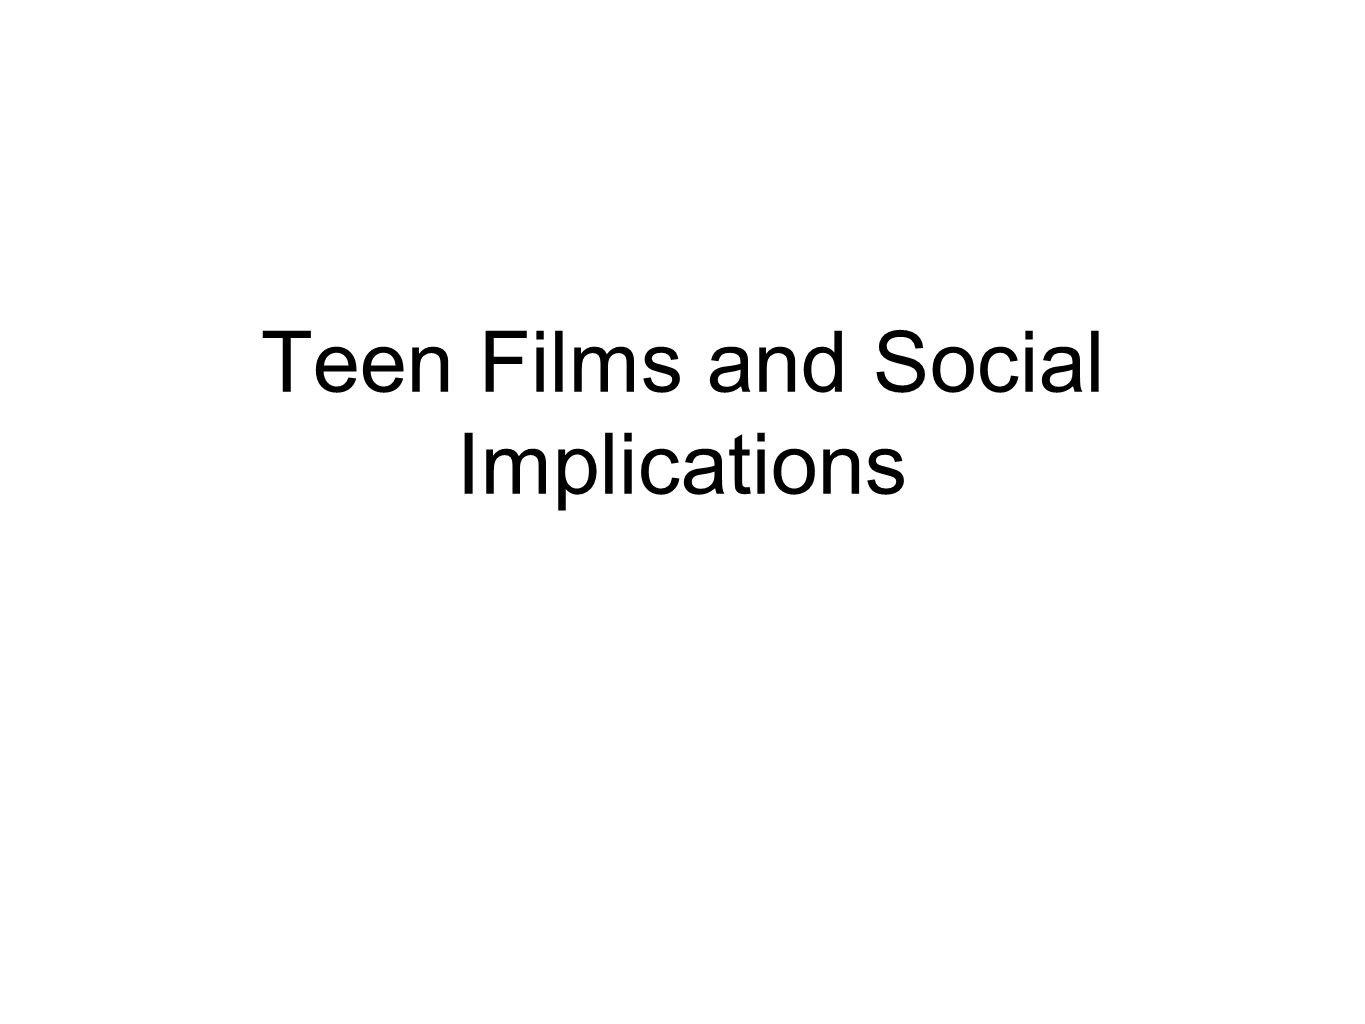 Teen Films and Social Implications